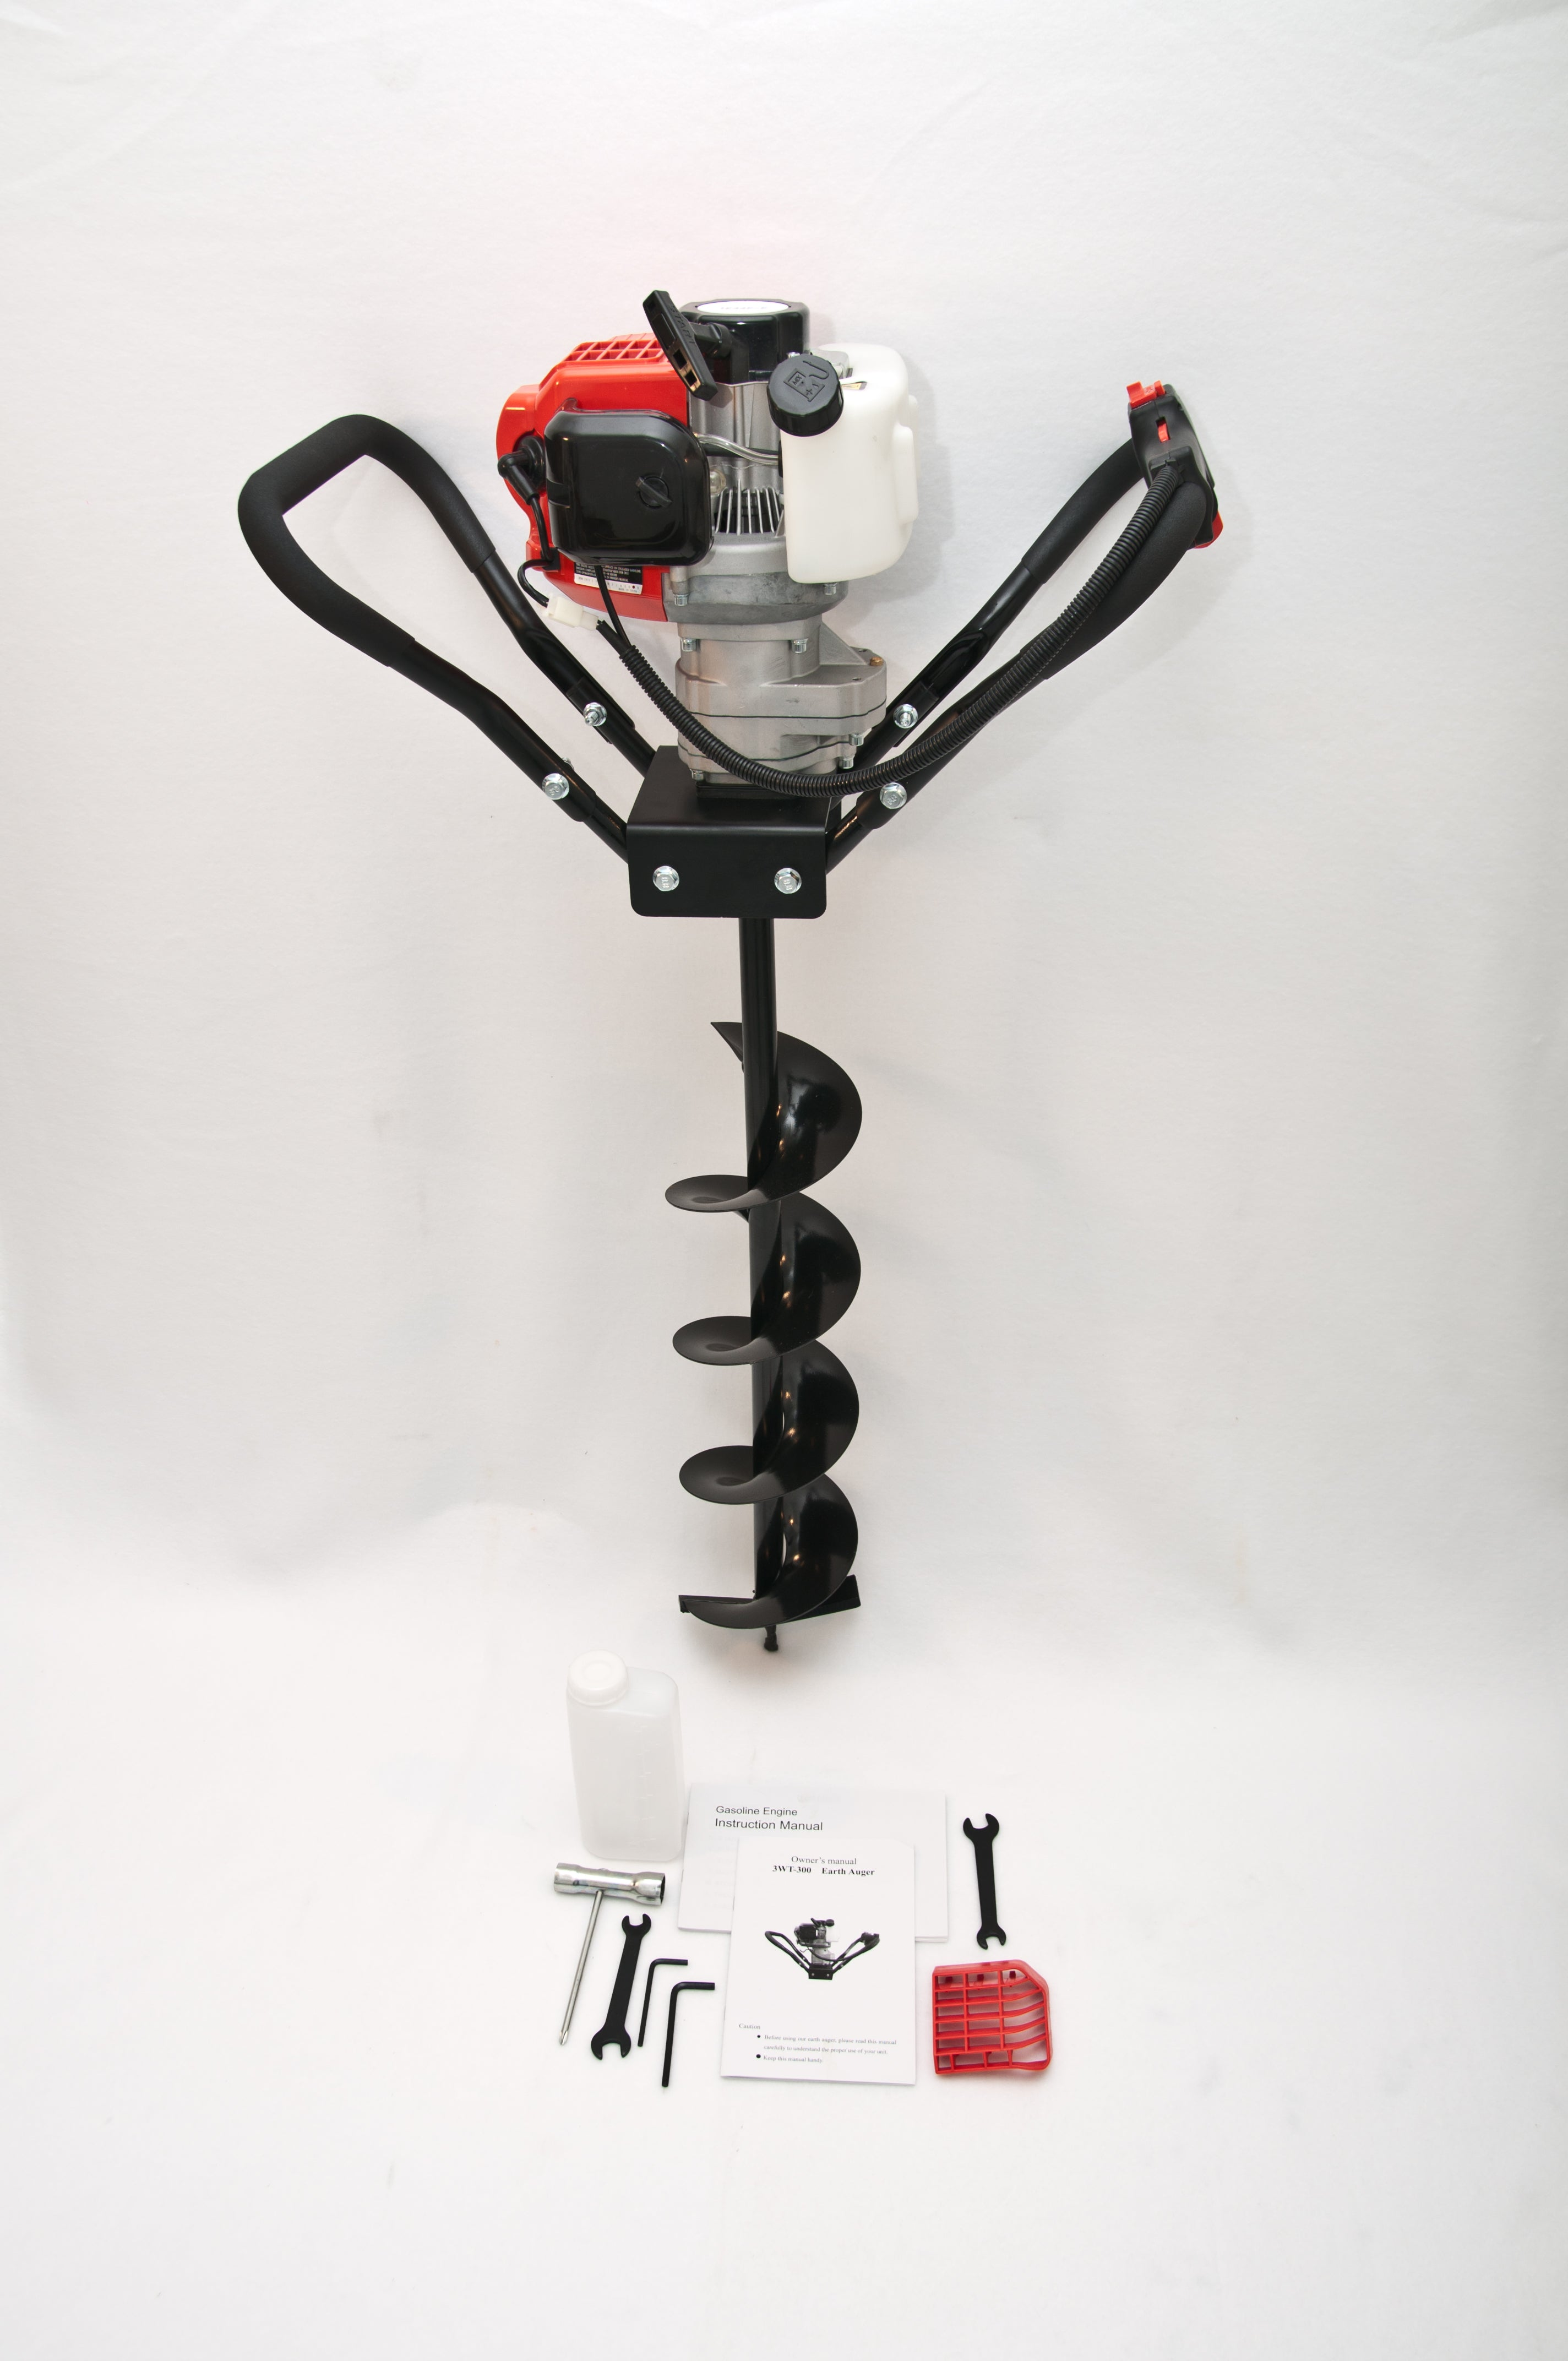 Tool Tuff Gas Combo One Auger Choose Size And Gas Powered 1